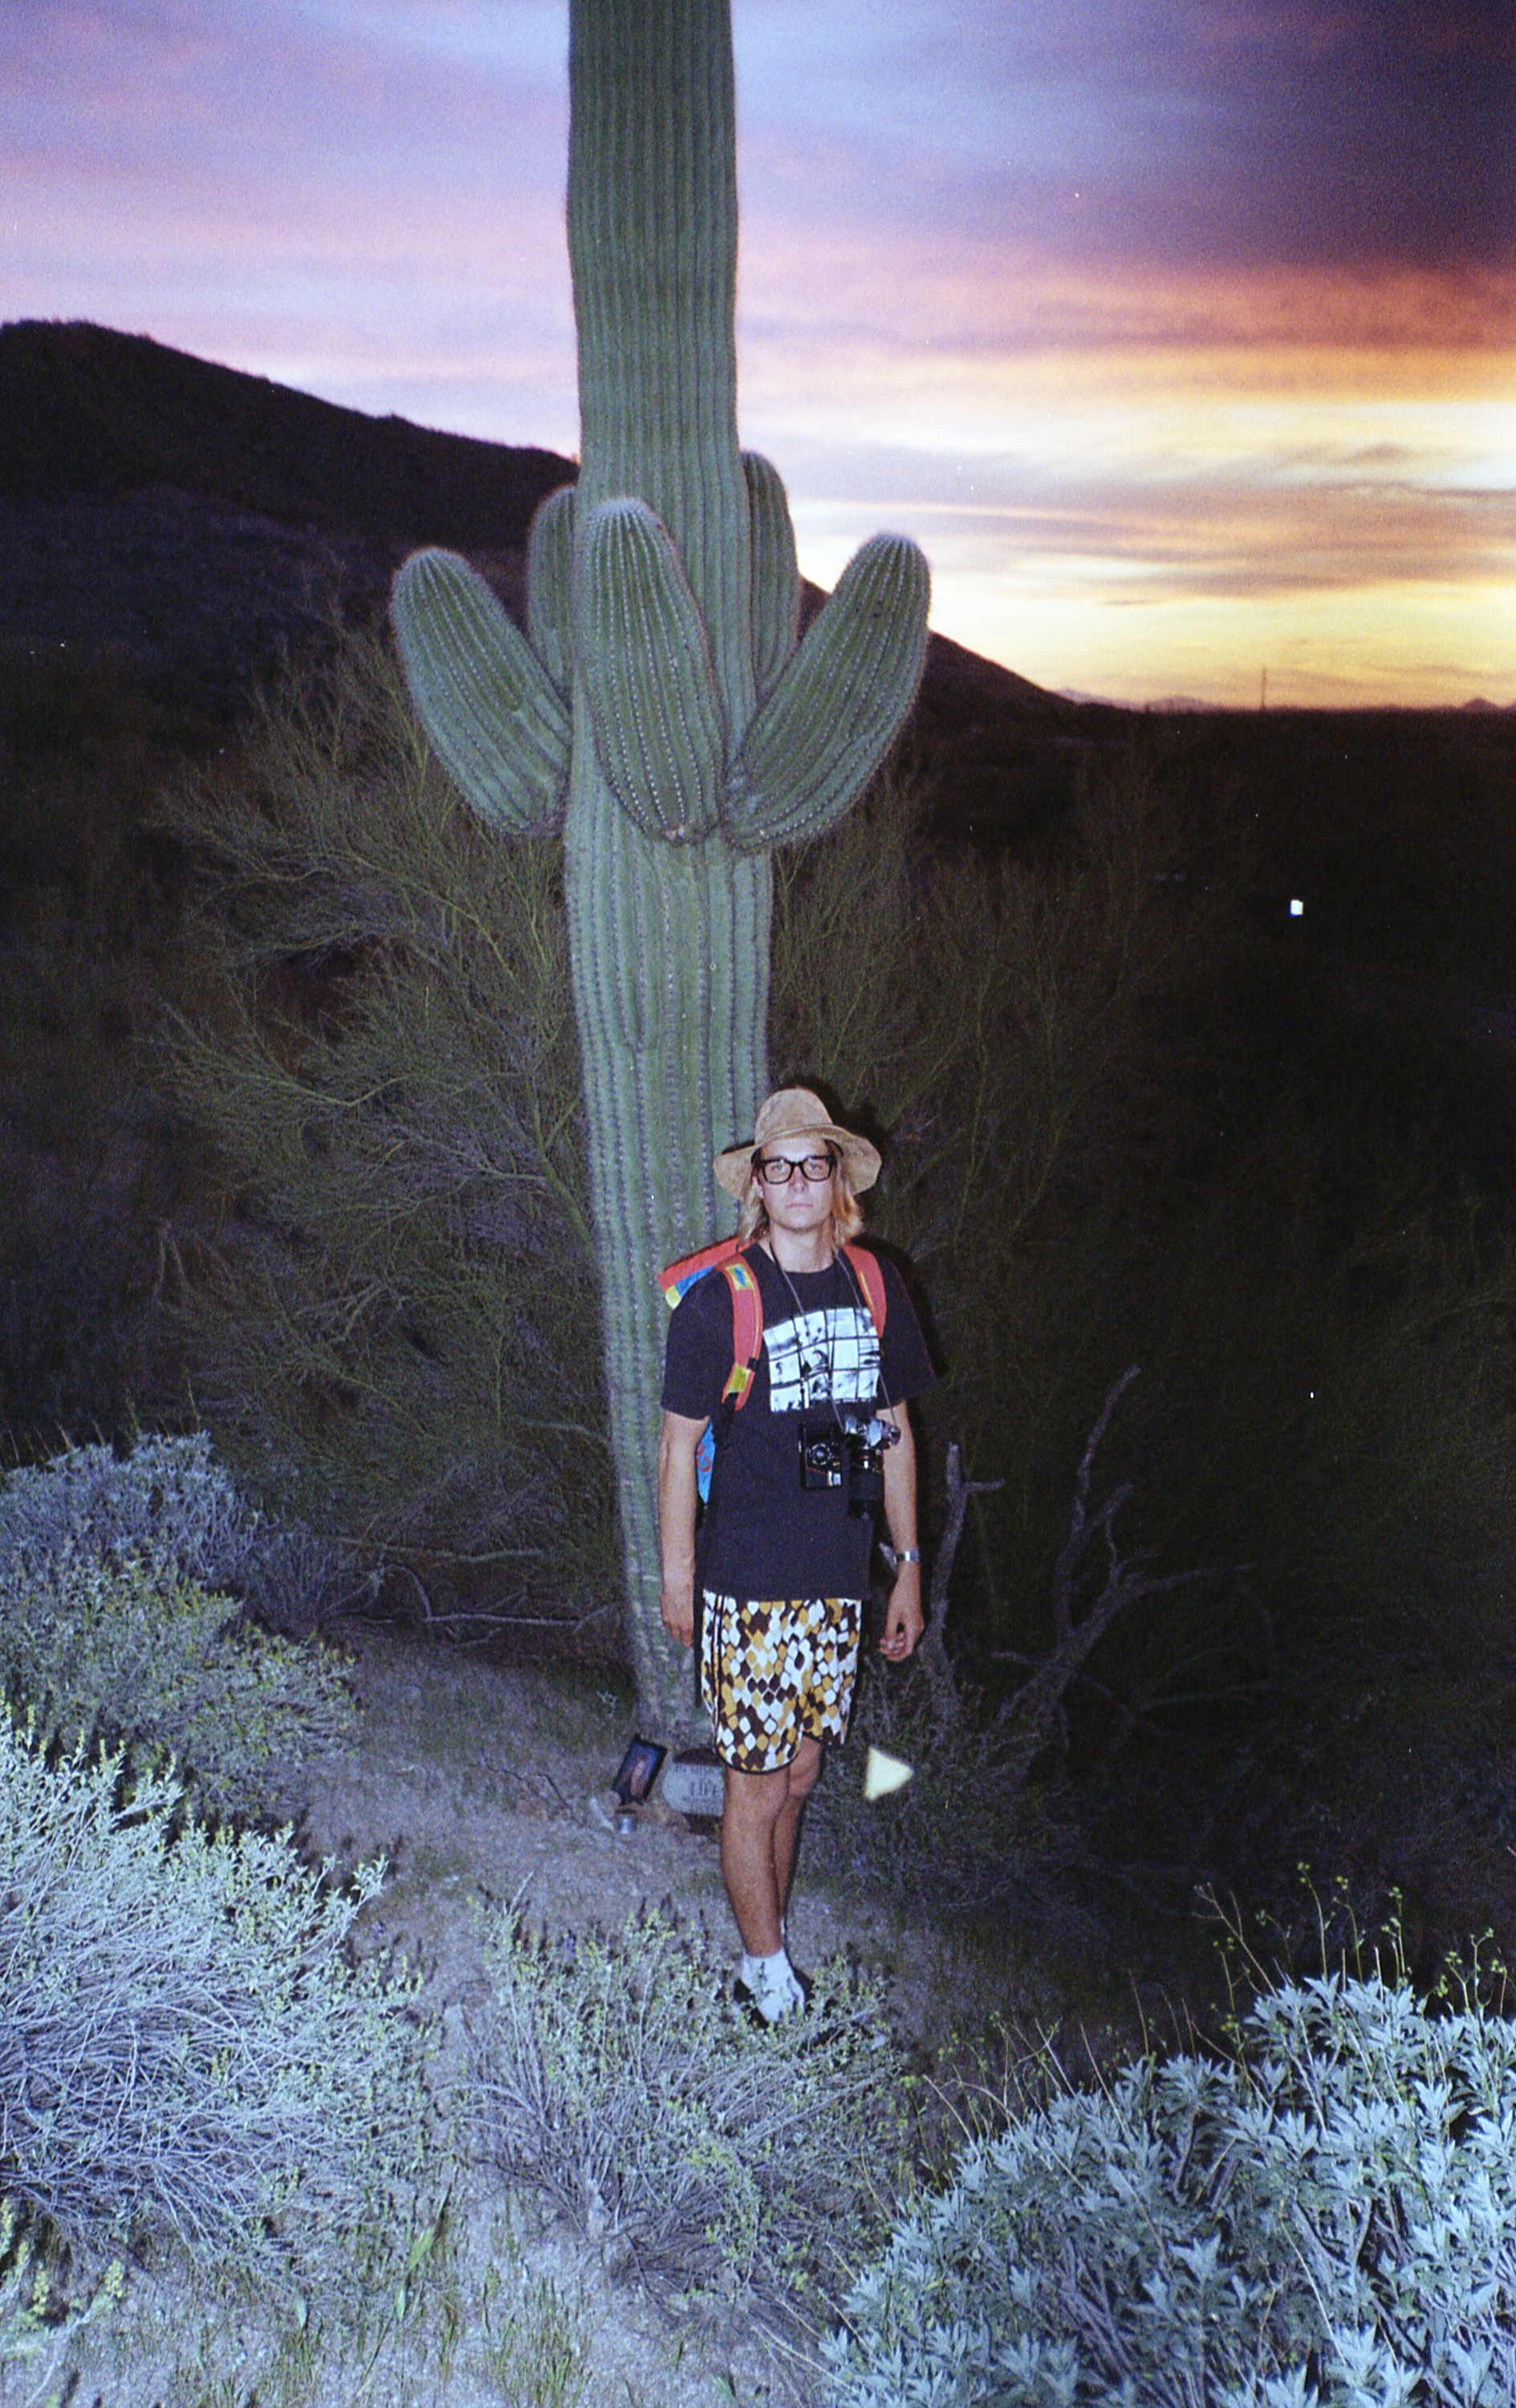 A memorial site was placed at the base of this giant saguaro.